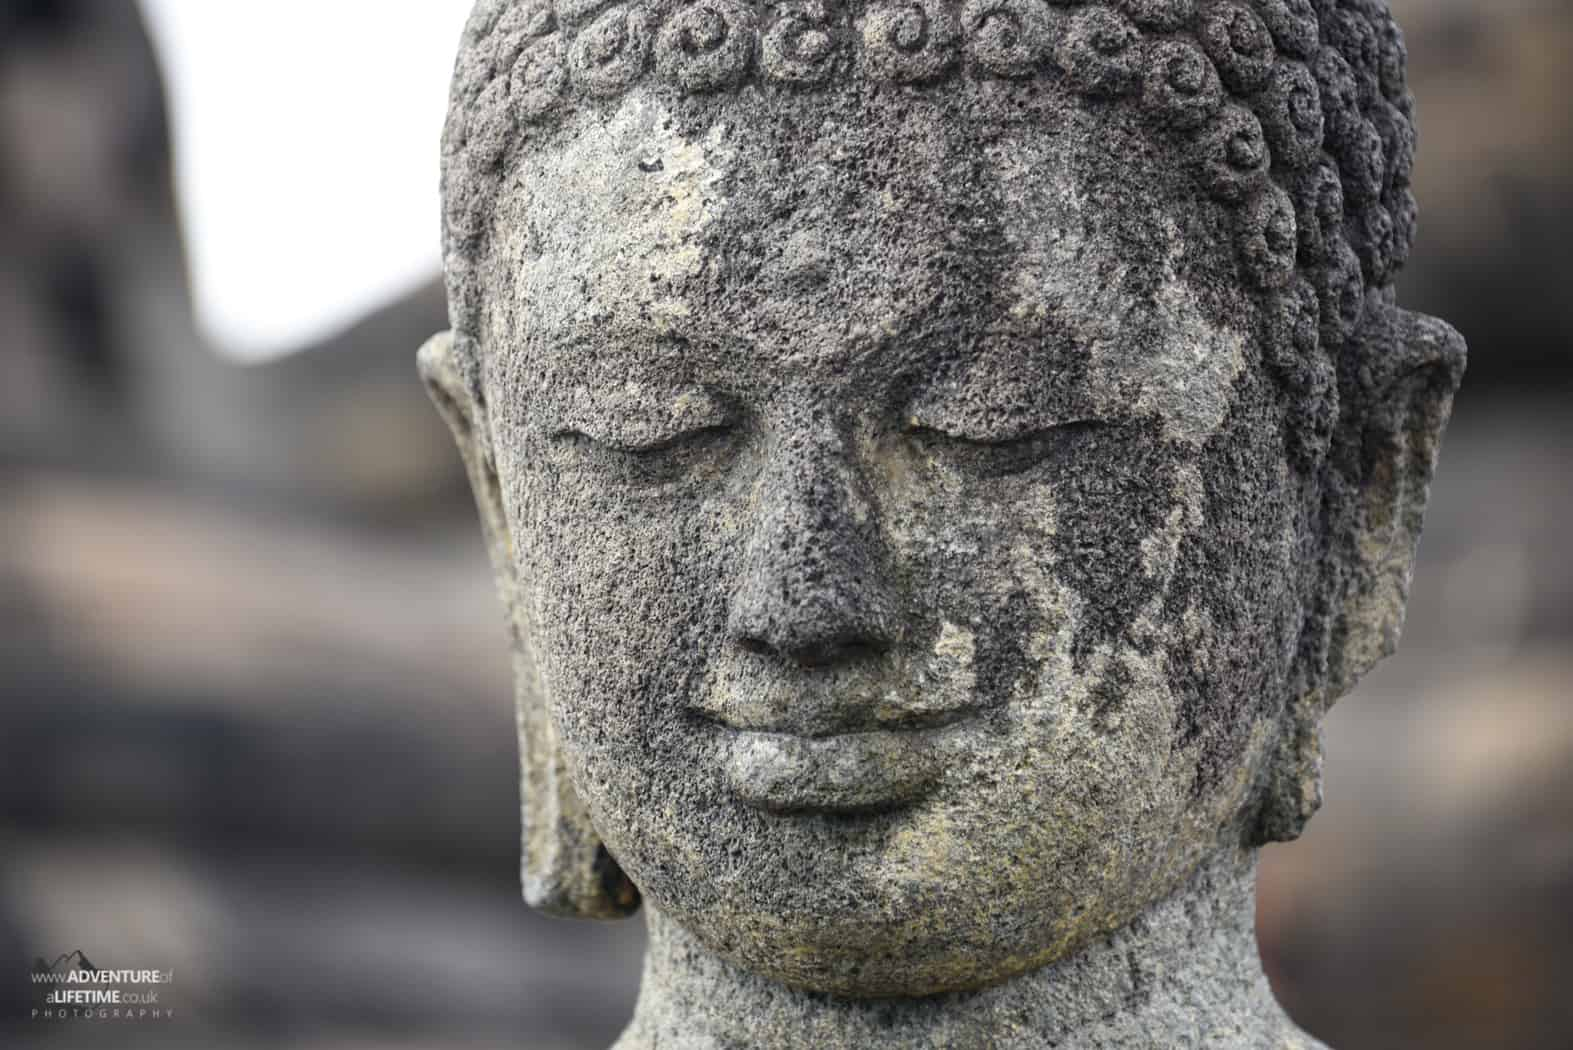 Buddha head, Borobudur temple, Java